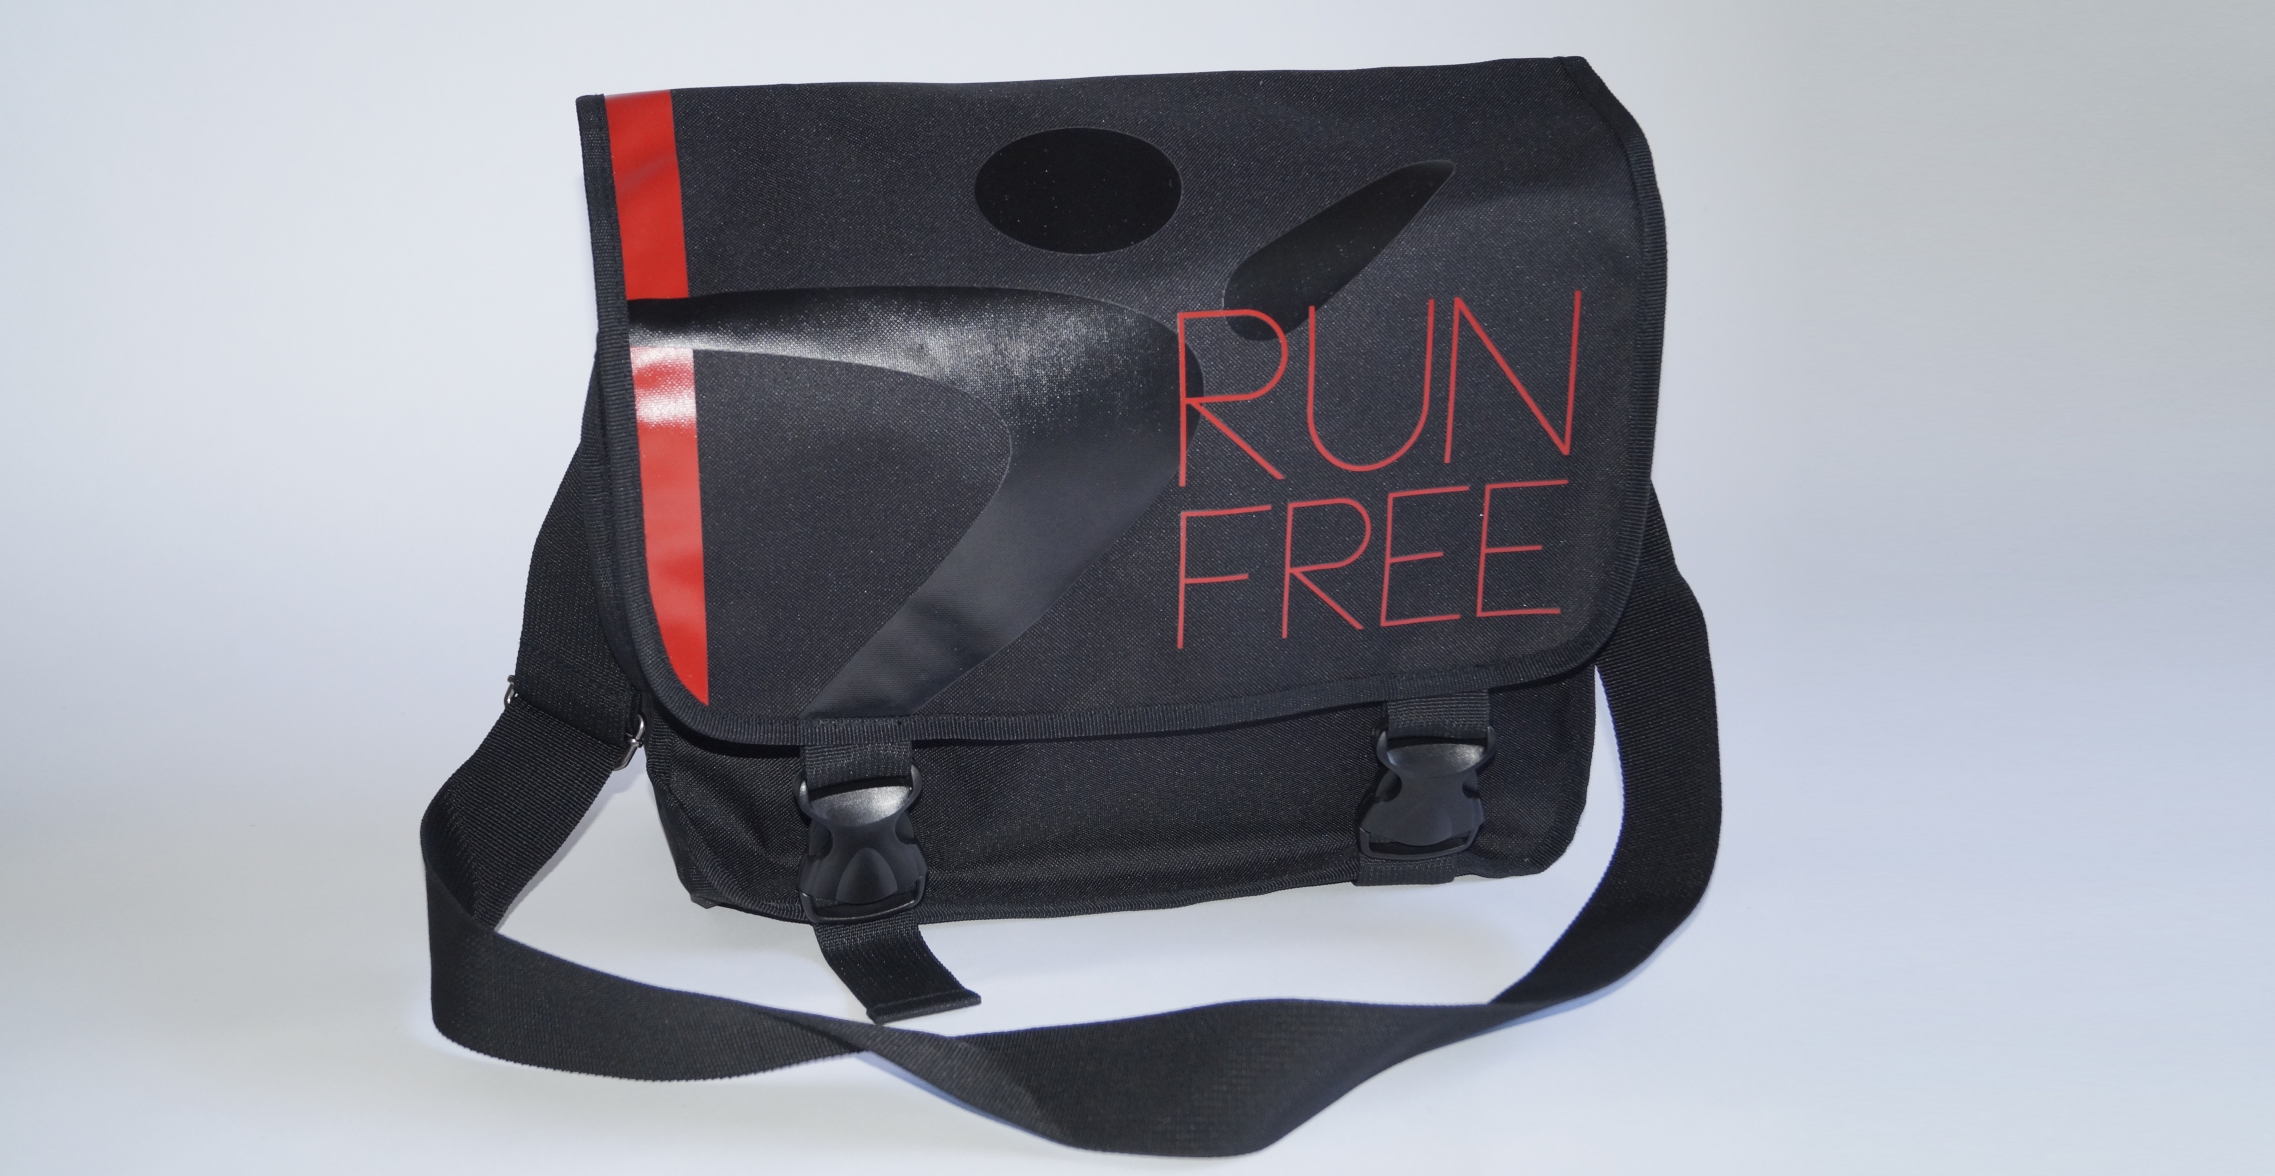 run-free-laptop-bag-3.jpg